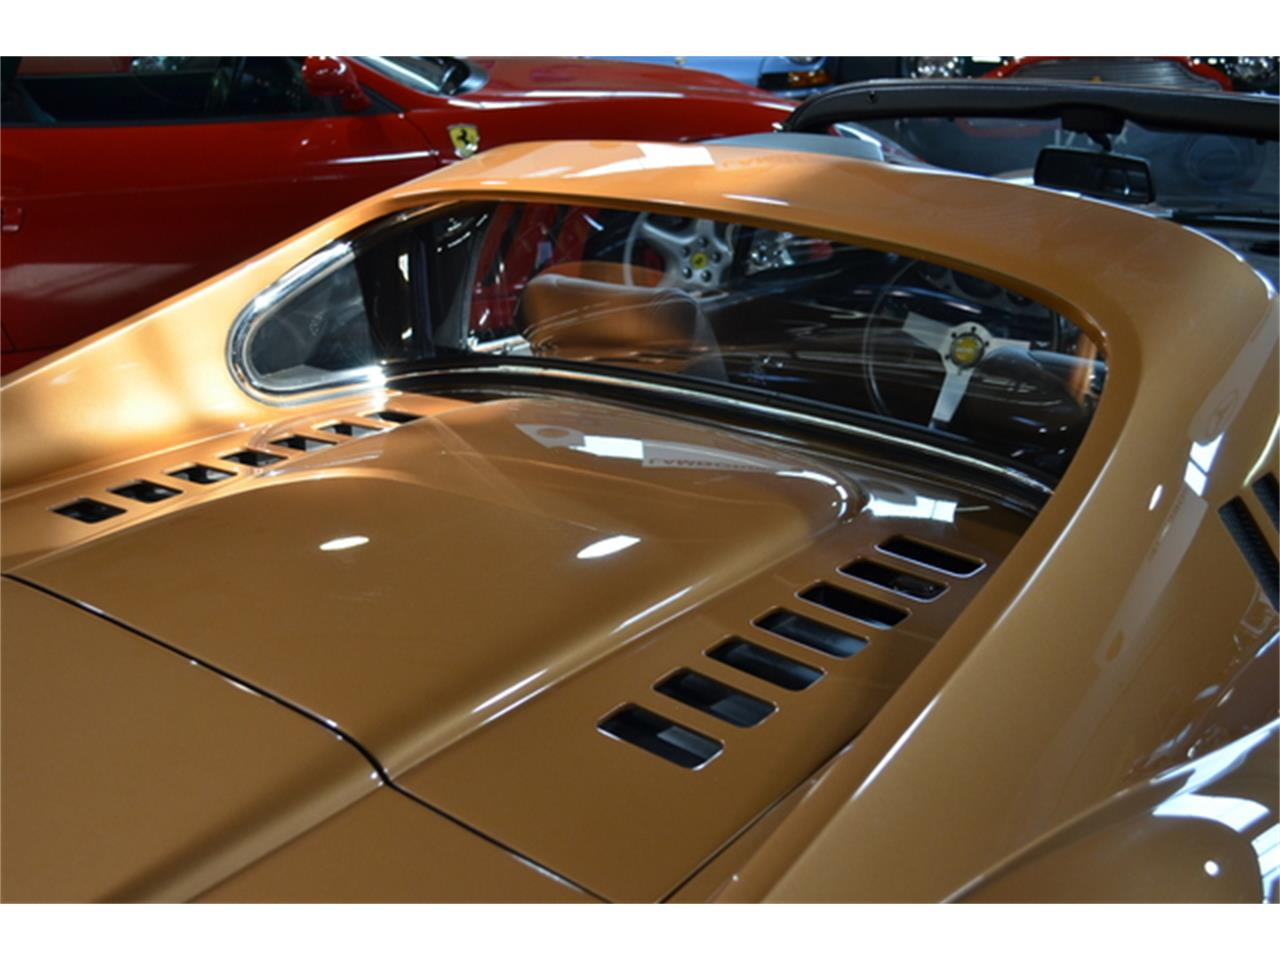 Large Picture of 1974 Ferrari Dino located in Huntington Station New York Auction Vehicle Offered by Autosport Designs Inc - L4HN